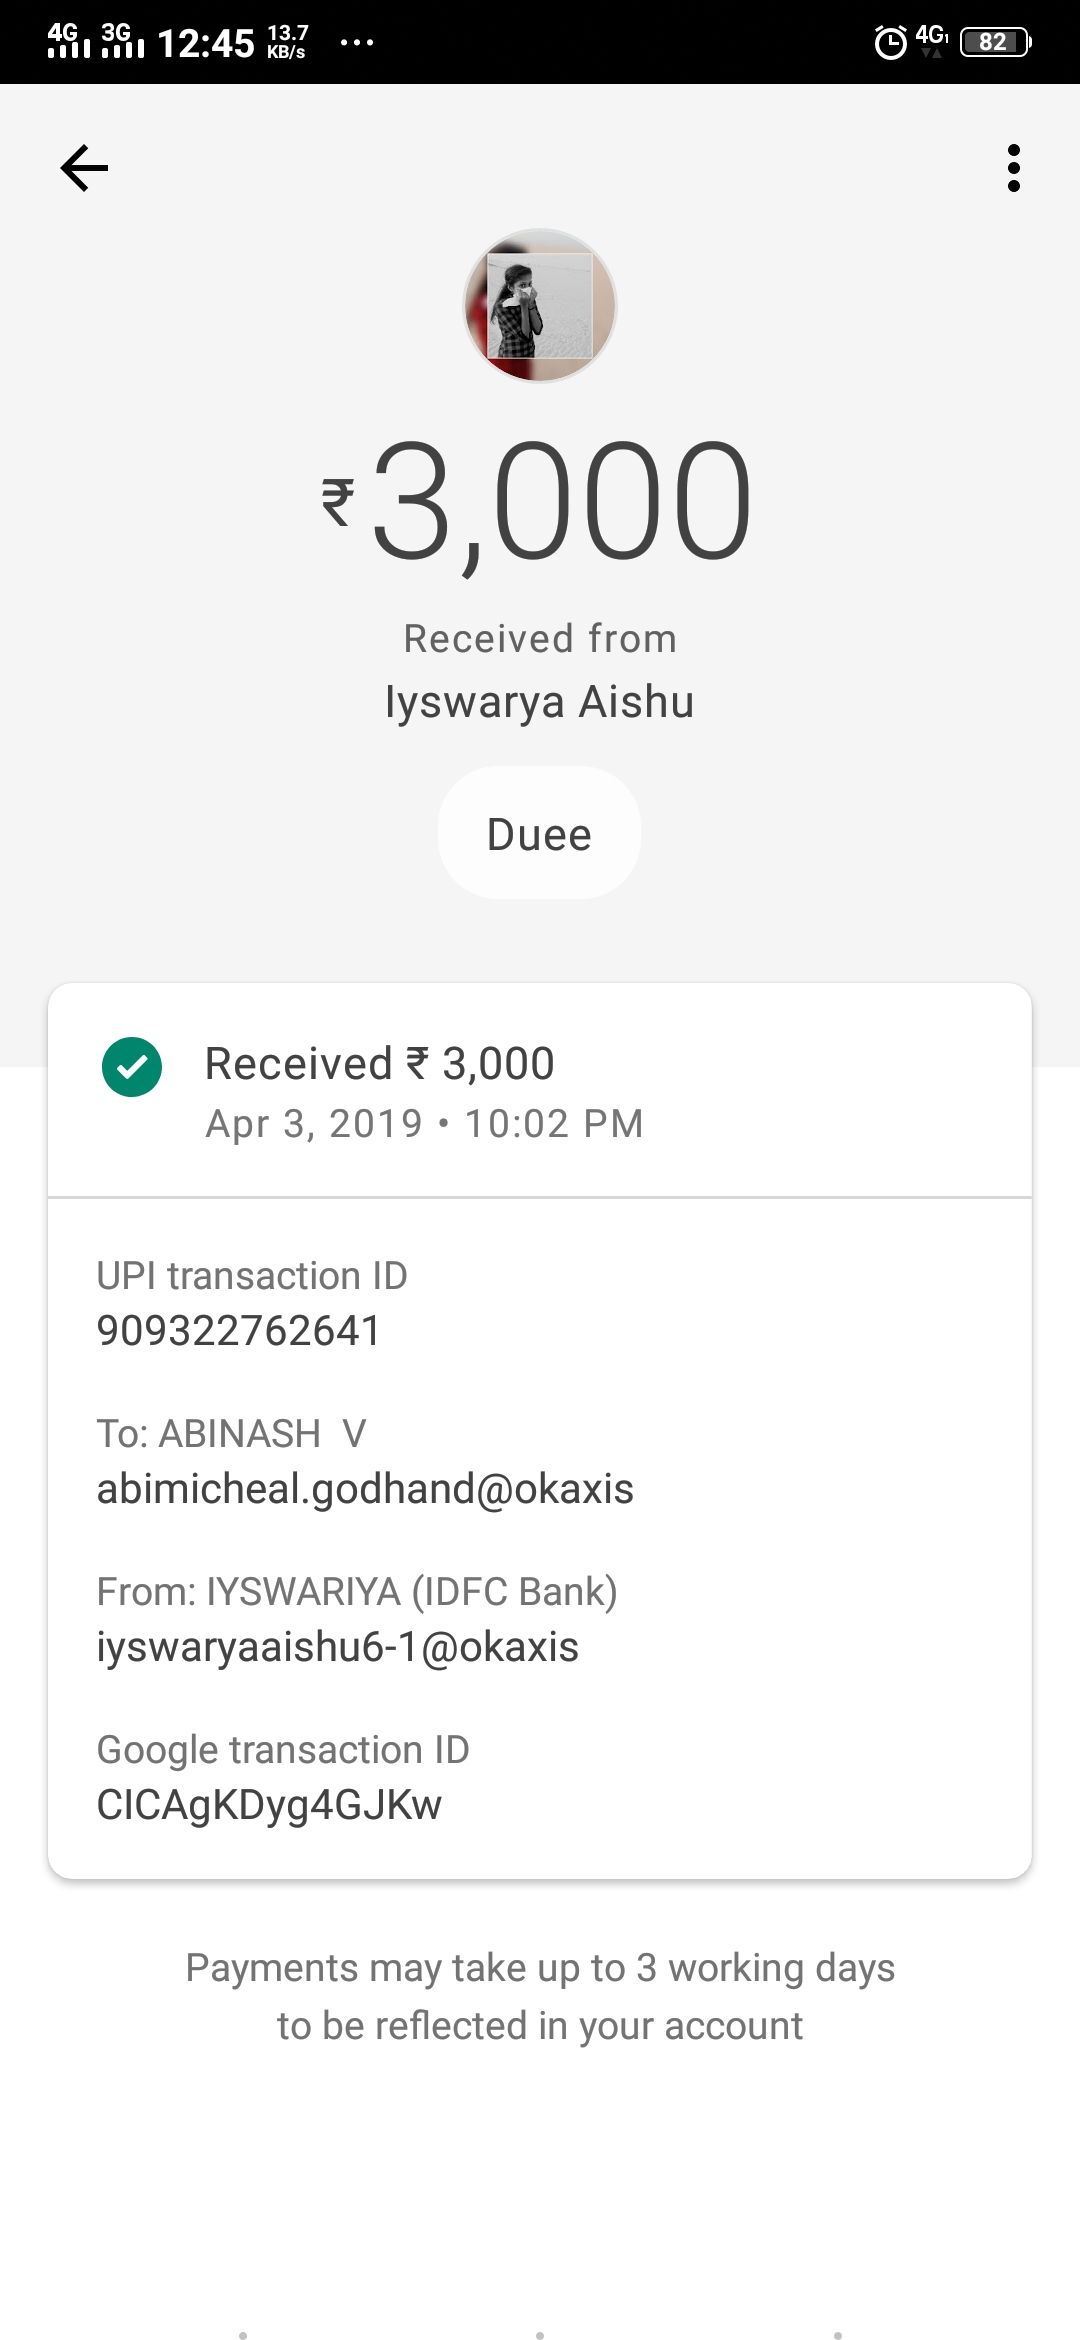 My Friend Send Money But I Received